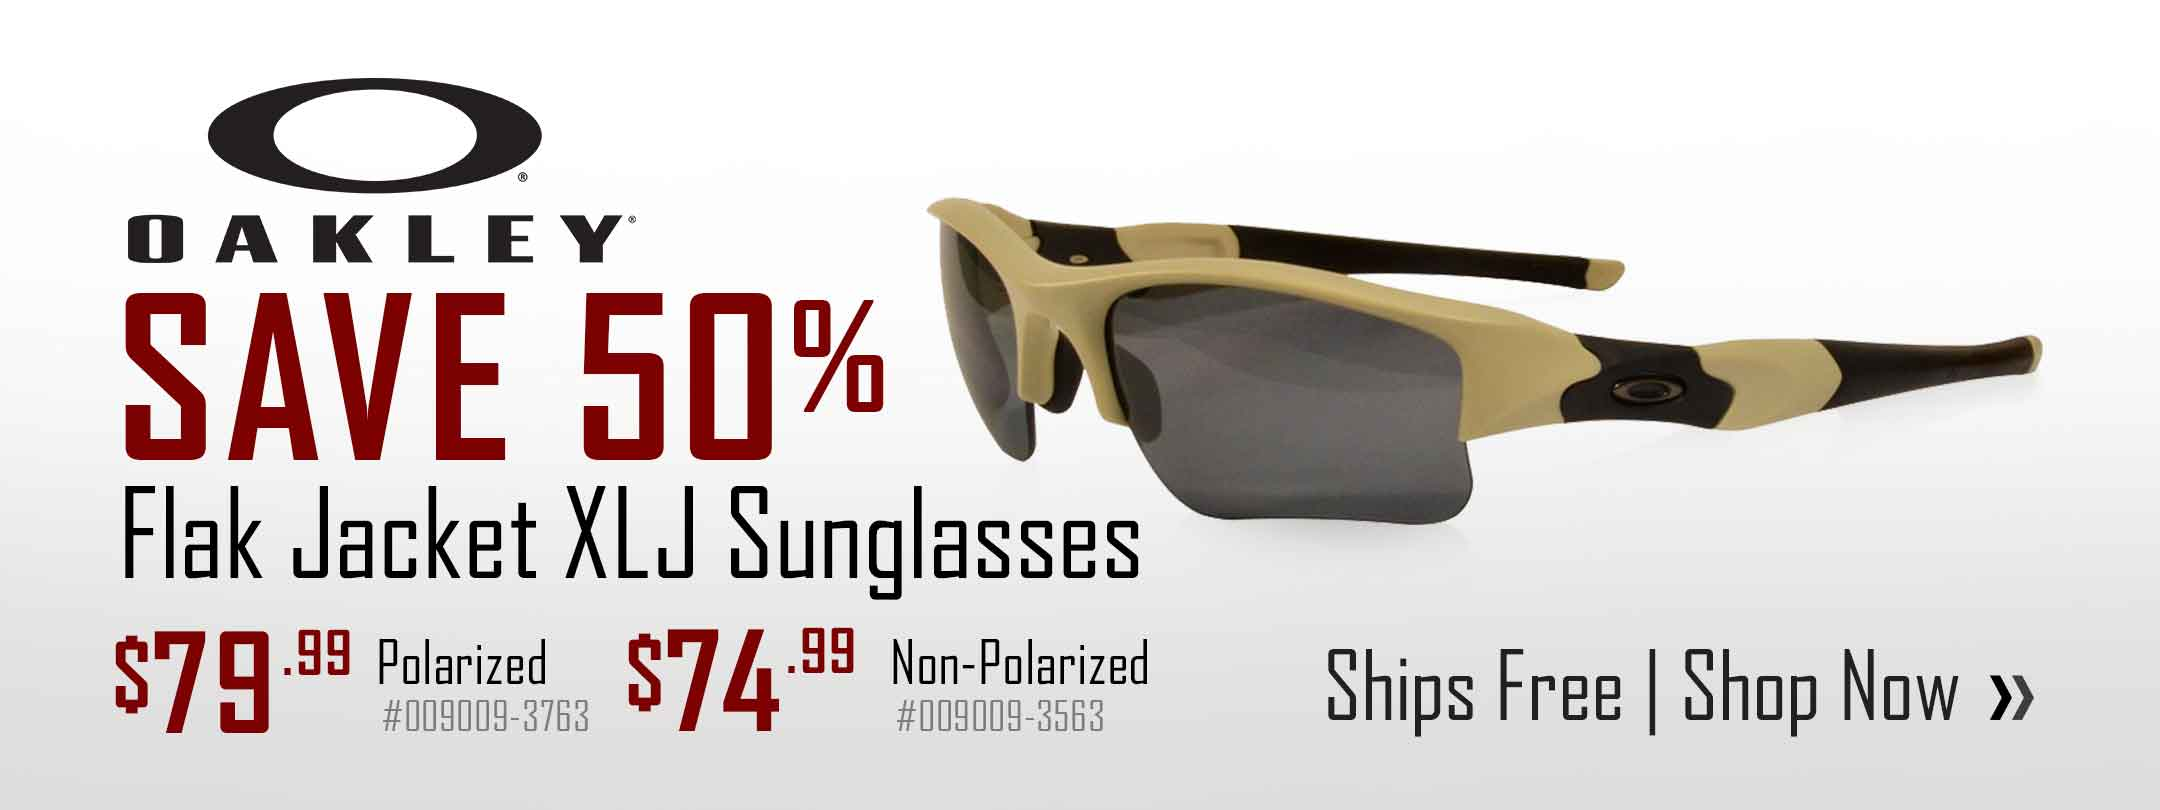 MidwayUSA Exclusive - Save on Oakley Flak Jacket Polarized & Non-Polarized Sunglasses